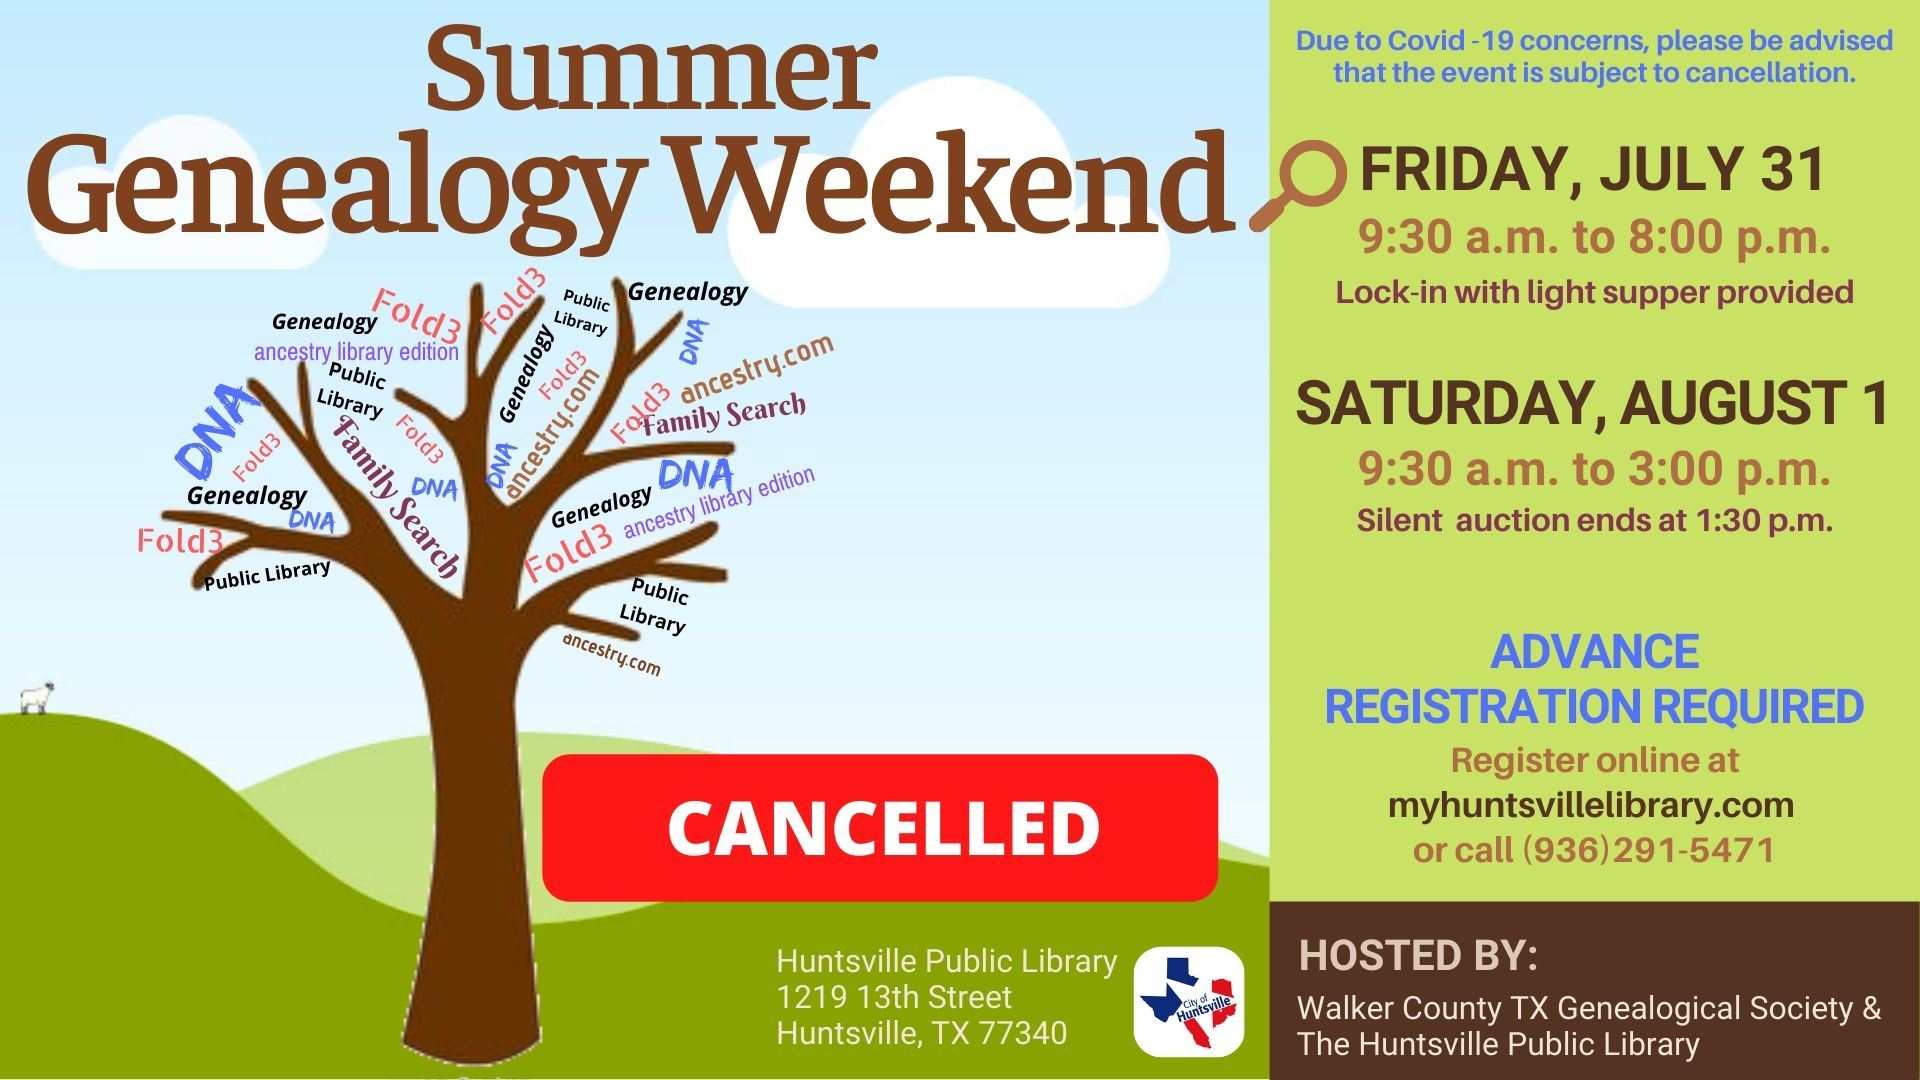 Genealogy Event Cancelled